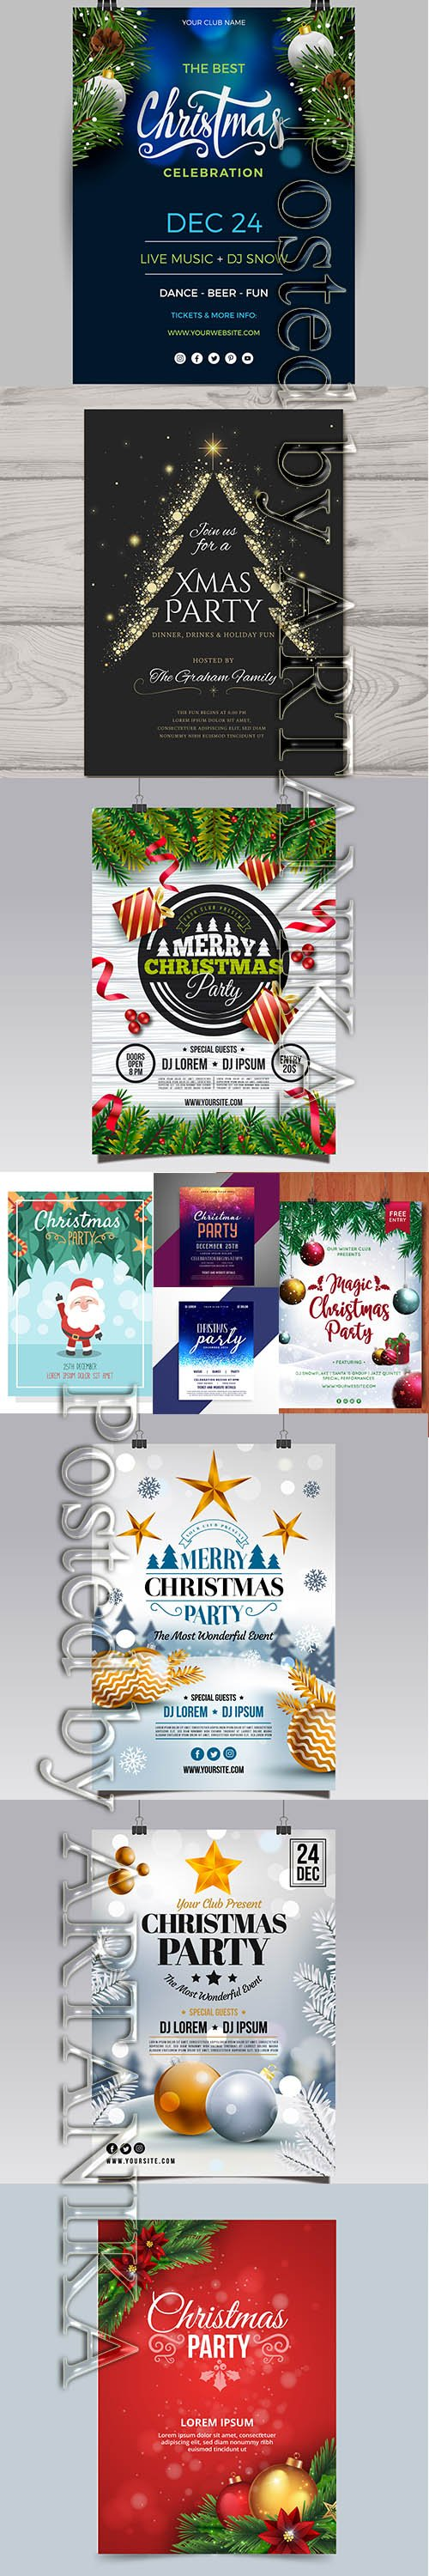 Happy Christmas Poster and Flyers Template Pack